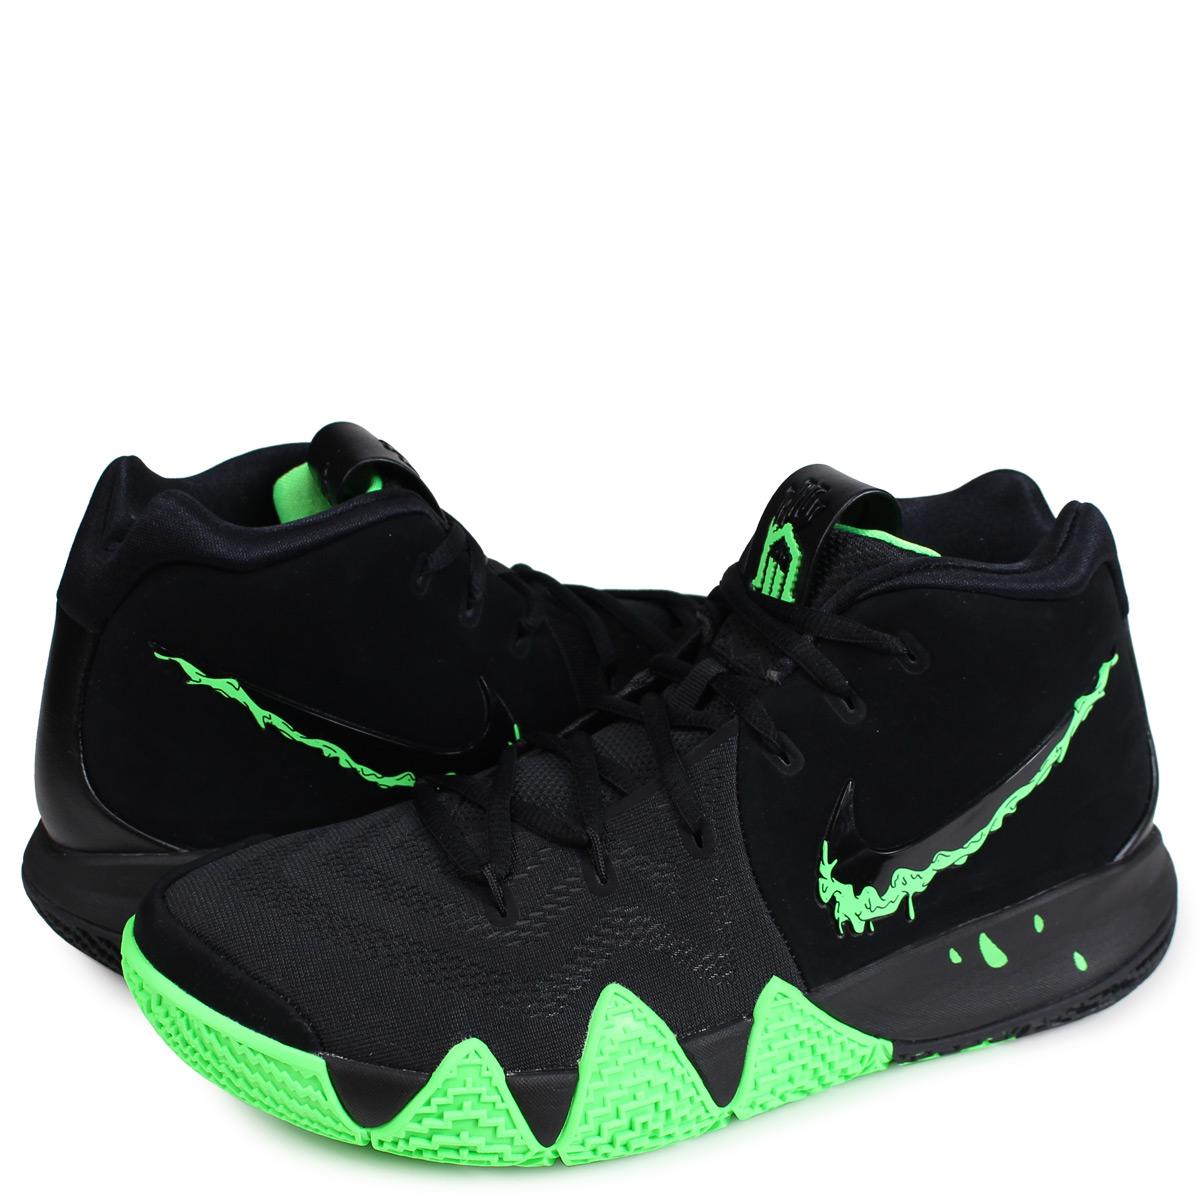 official photos 8322d fb37a Nike NIKE chi Lee 4 sneakers men KYRIE 4 EP HALLOWEEN black black  943,807-012 [197]